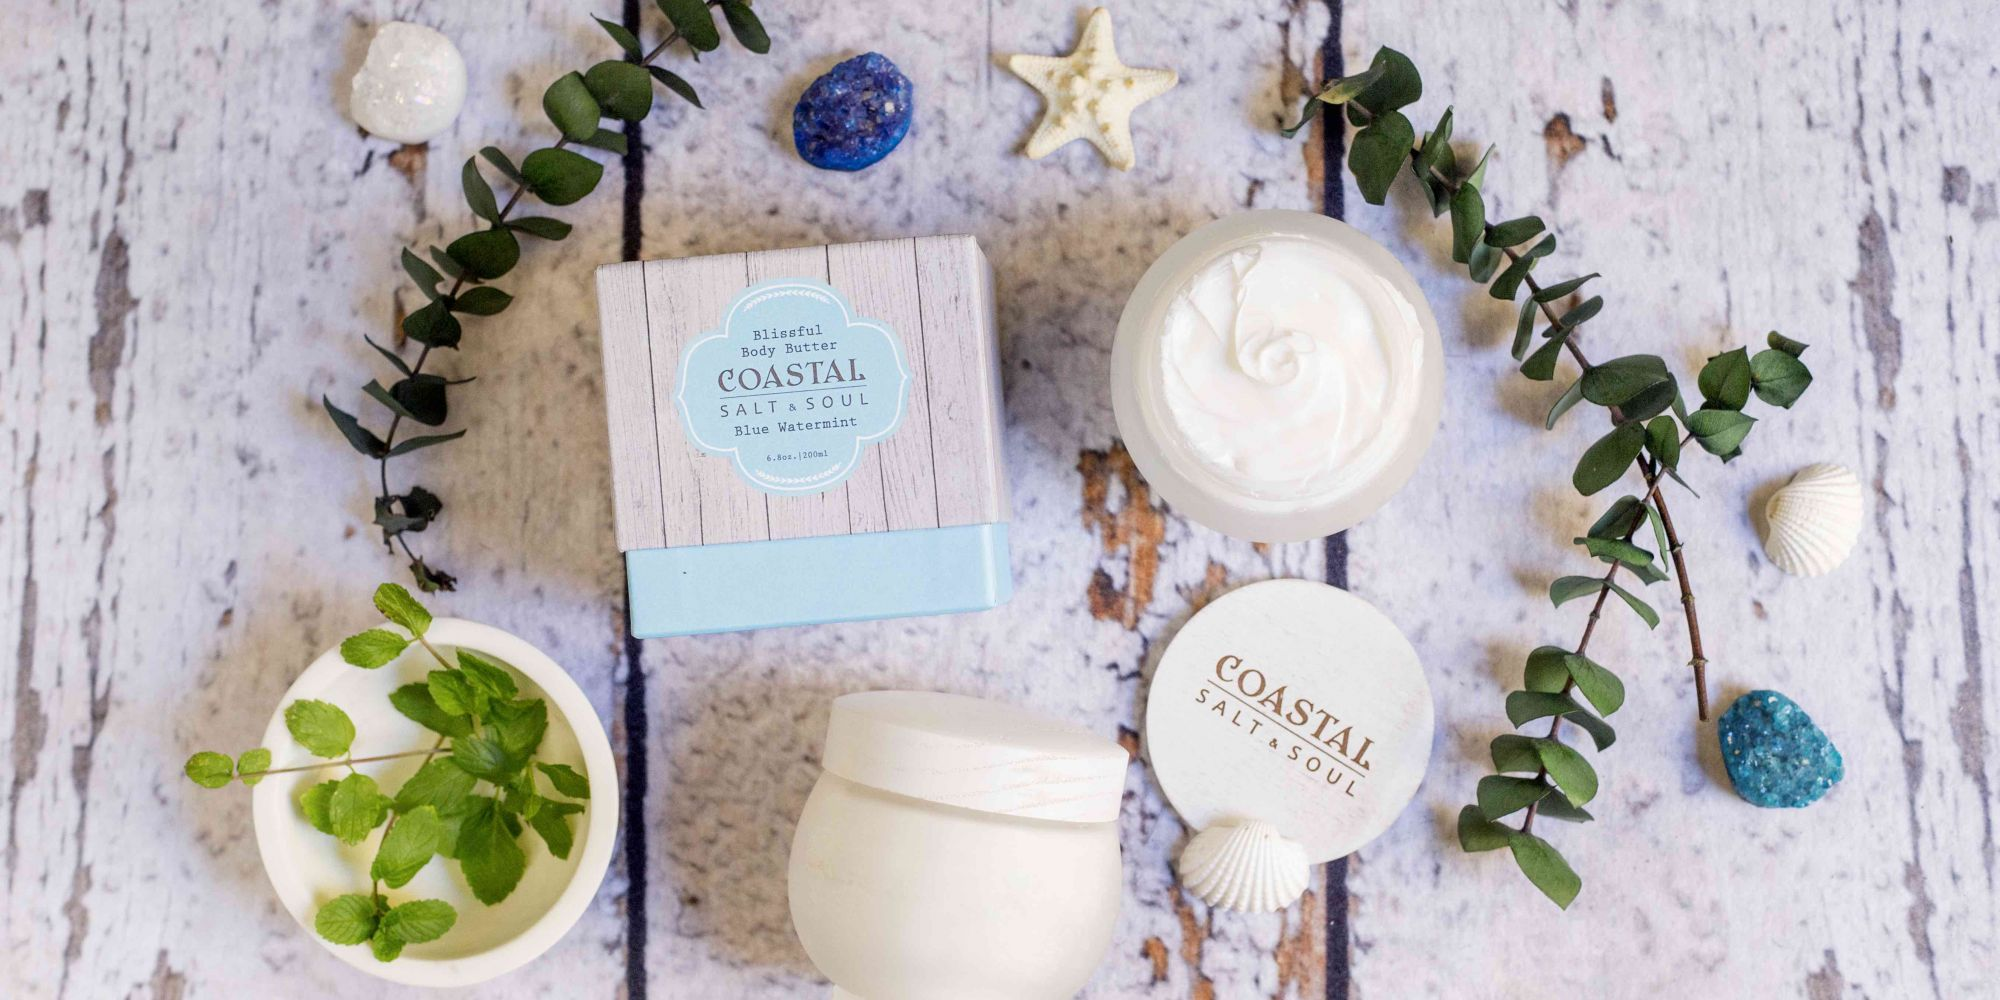 Celebrate Beauty Brands Wades Into Bath And Body Care With The Acquisition Of Coastal Salt & Soul